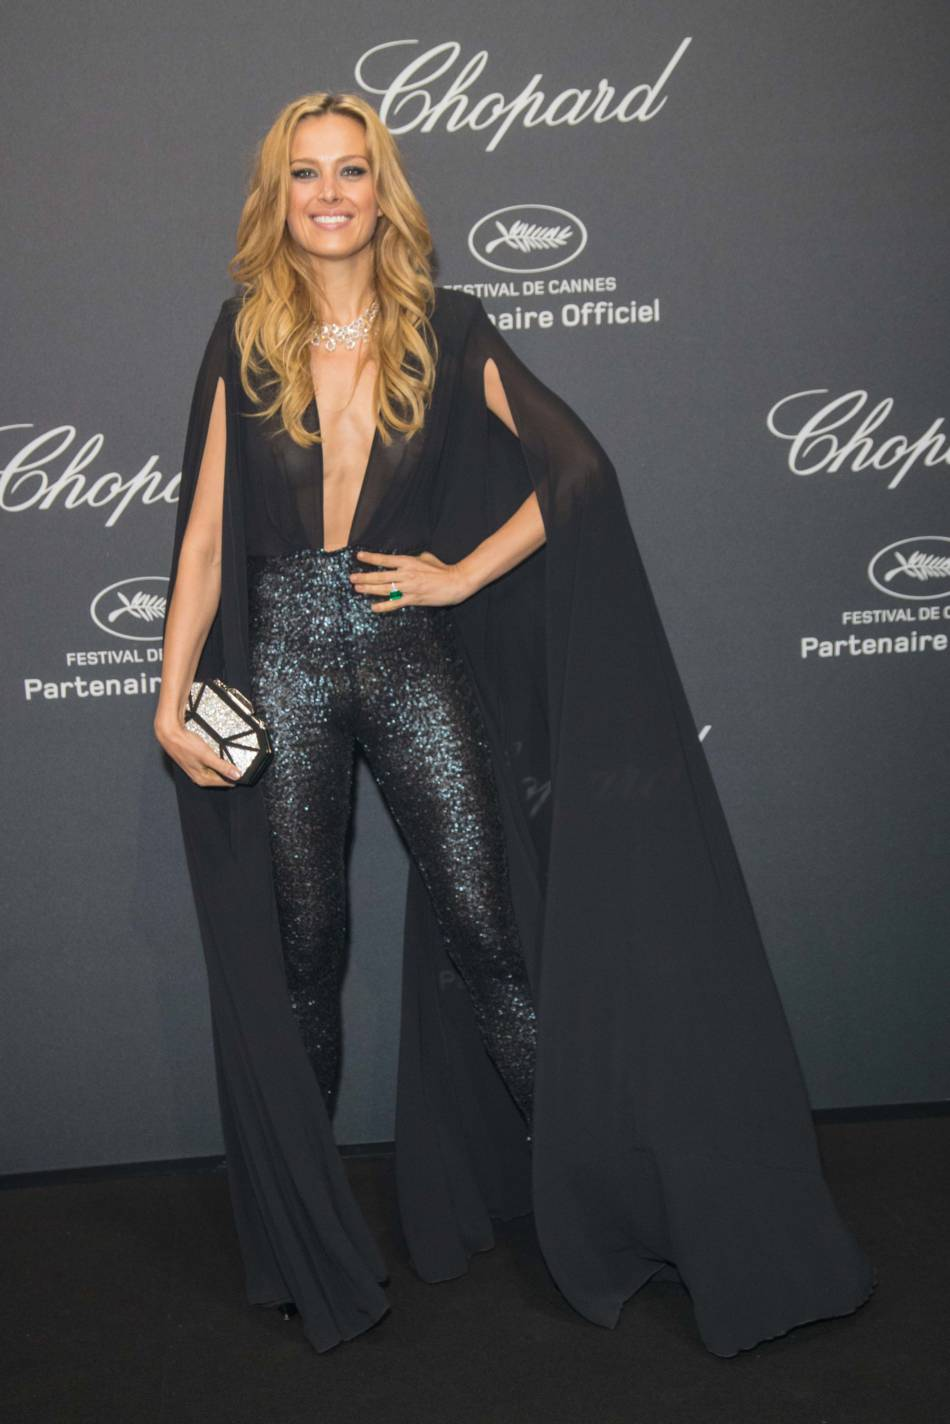 16.05.2016 - Cannes 69 - Chopard Wild Party - Petra Nemcova - Makeup hair Massimo Serini